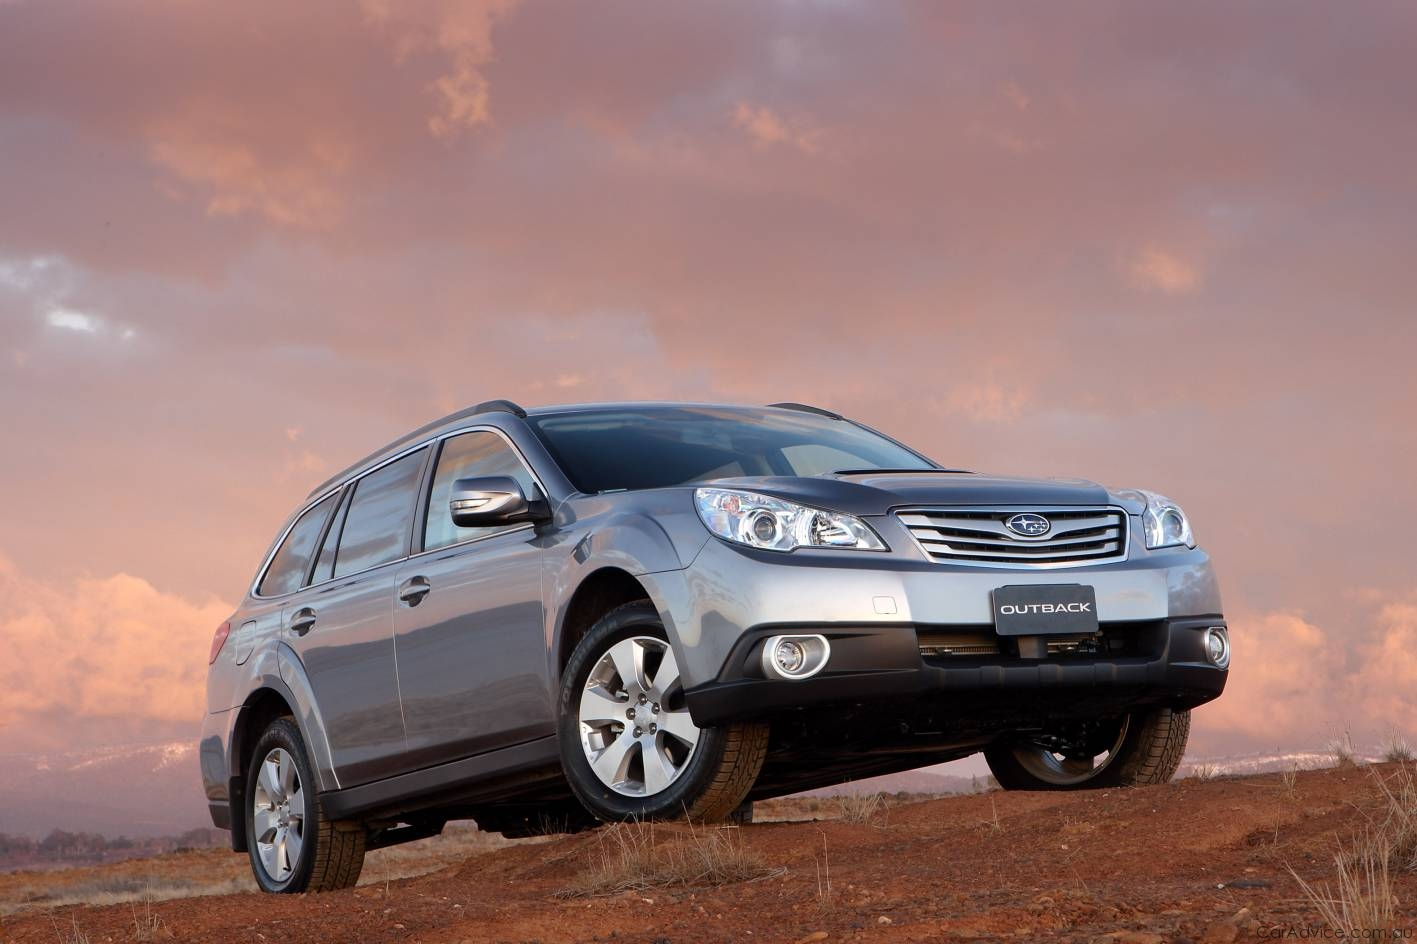 BMW Mountain View >> 2010 Subaru Outback Diesel - photos | CarAdvice